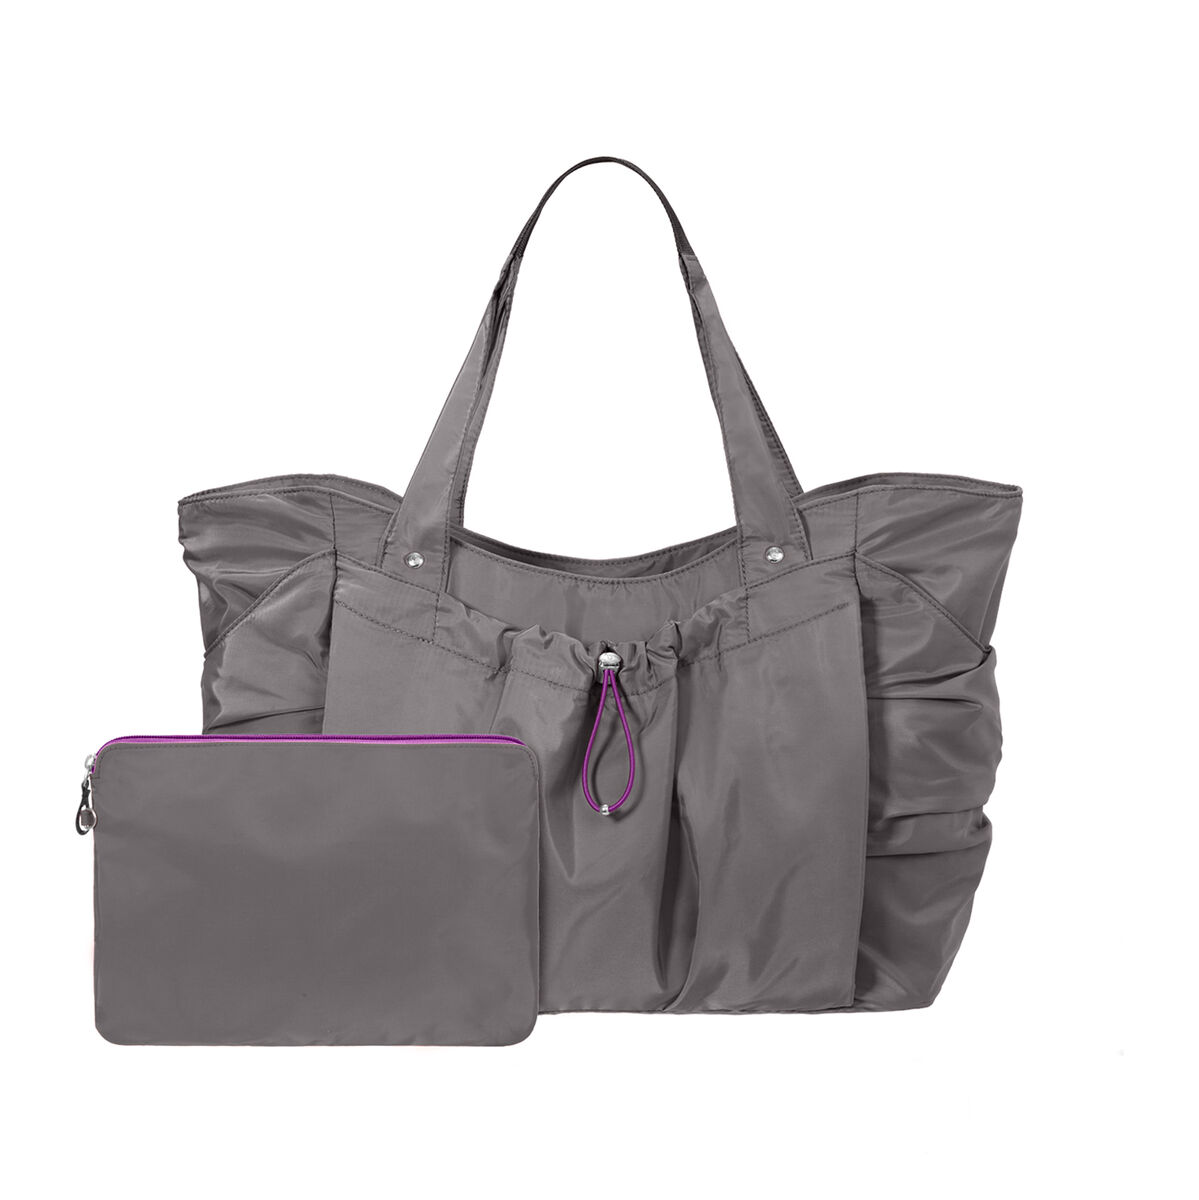 balance medium yoga tote bag